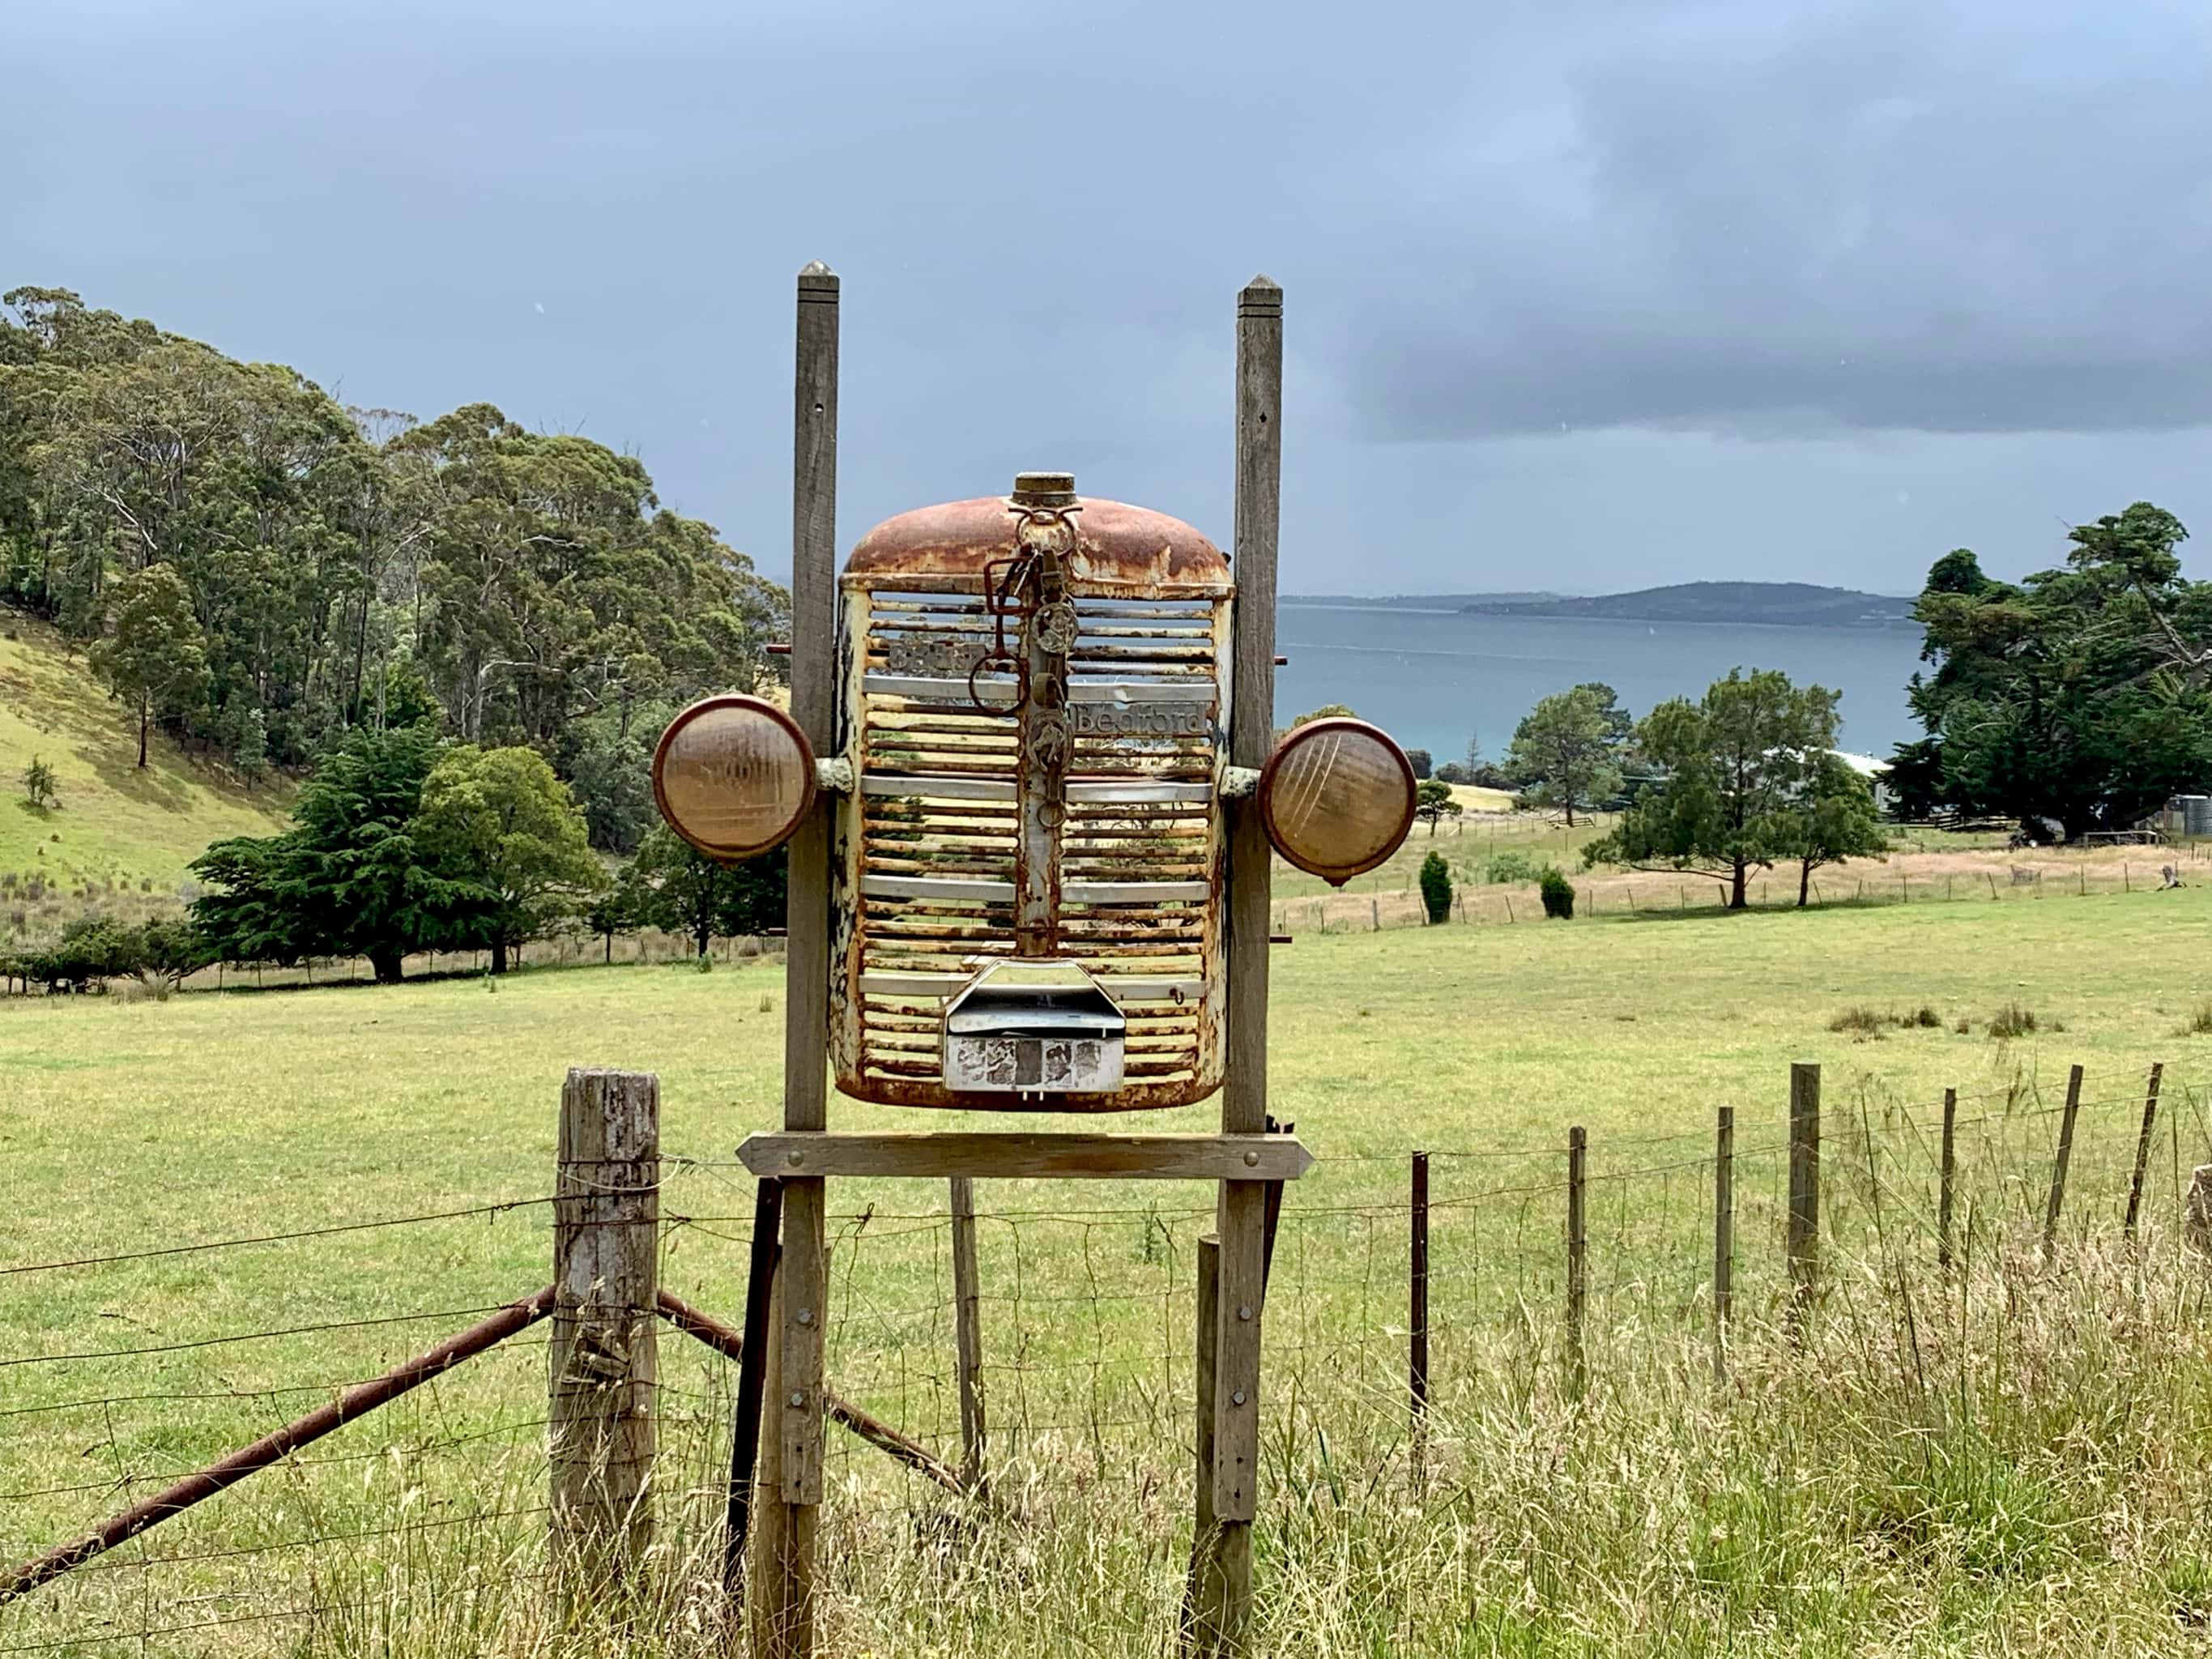 Unique mailbox made of car parts on North Bruny Island.